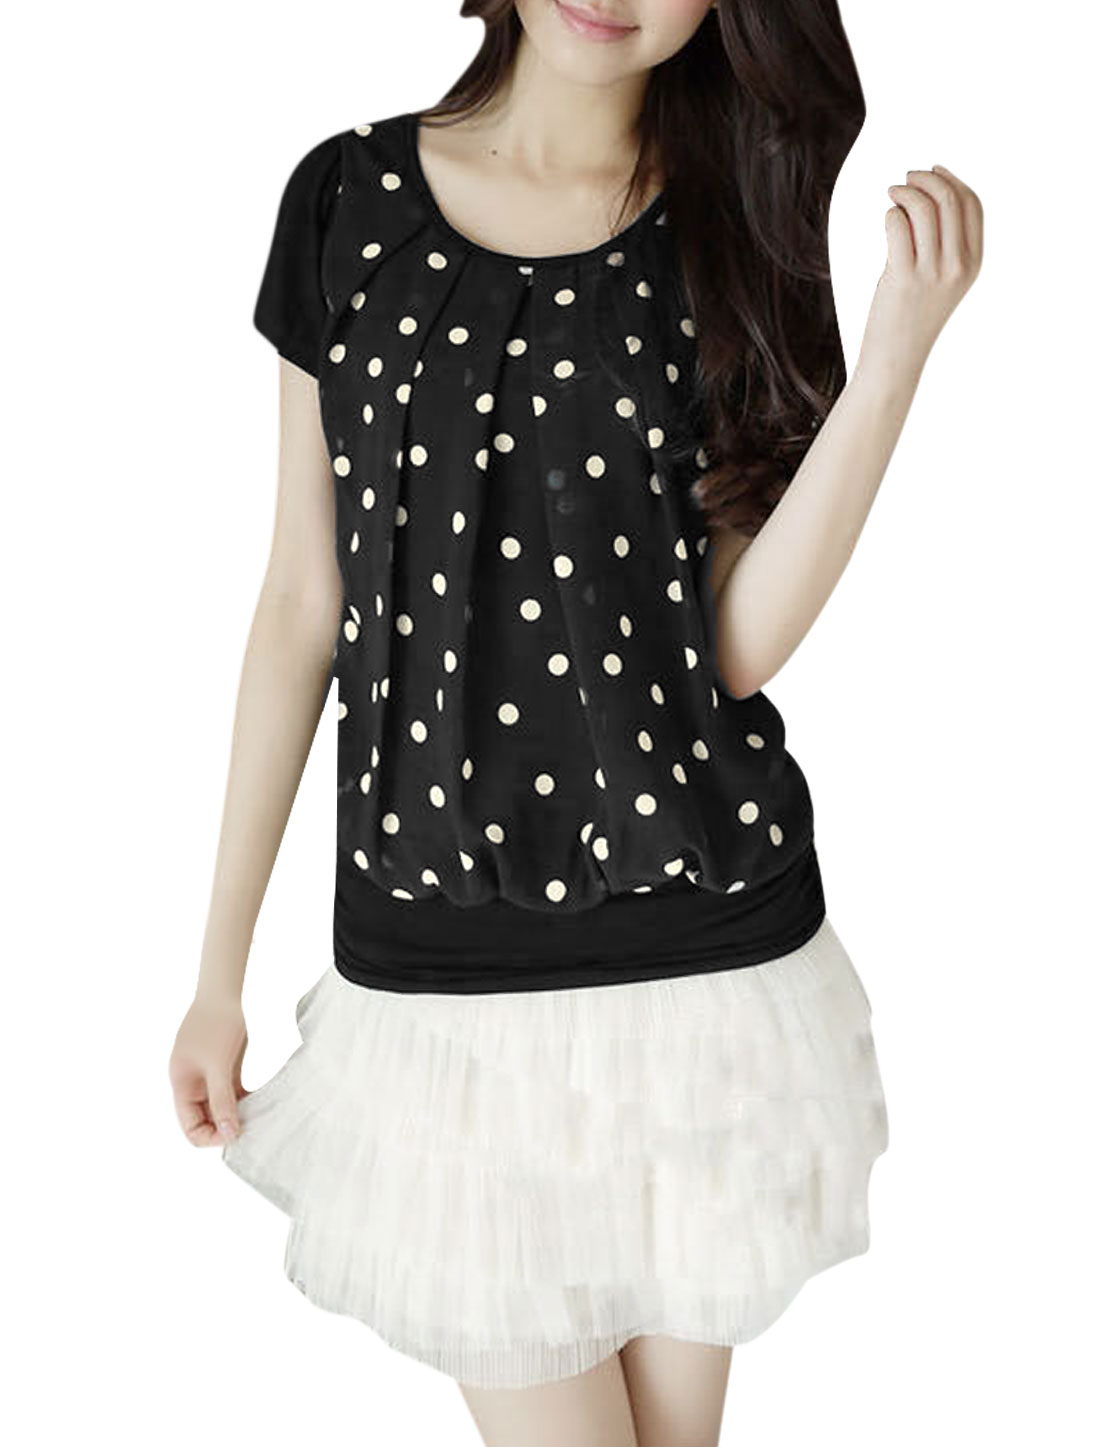 Lady Splice Chiffon Front Design Dots Pattern Blouse Black XS